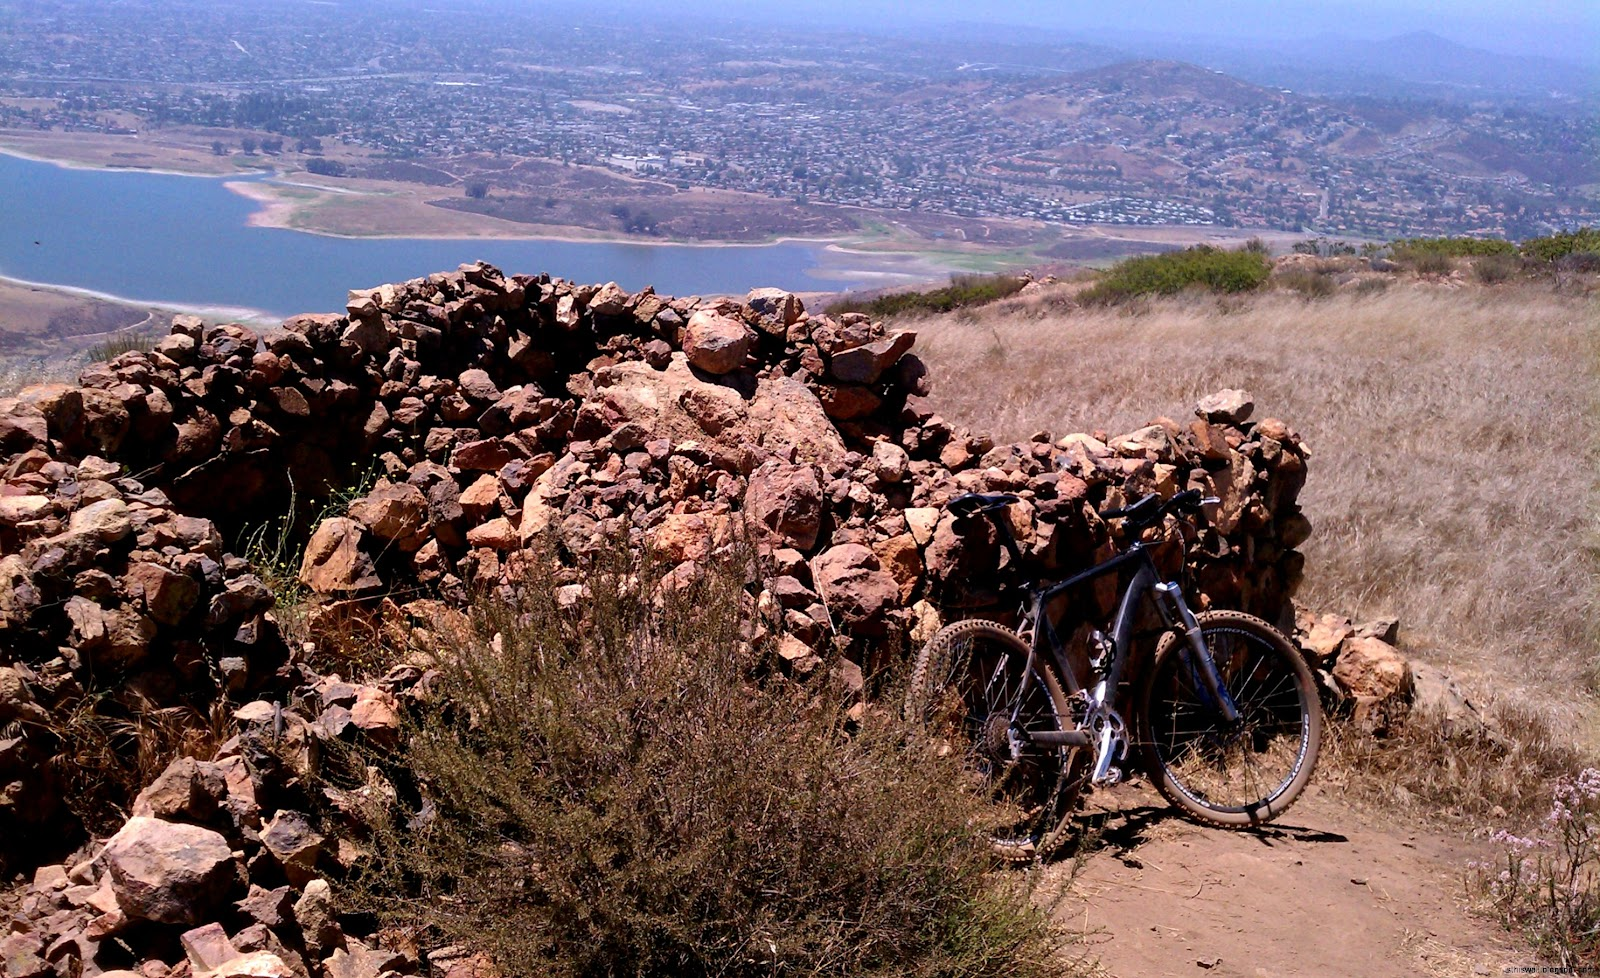 have also managed to get in some dirt time at La Costa here and